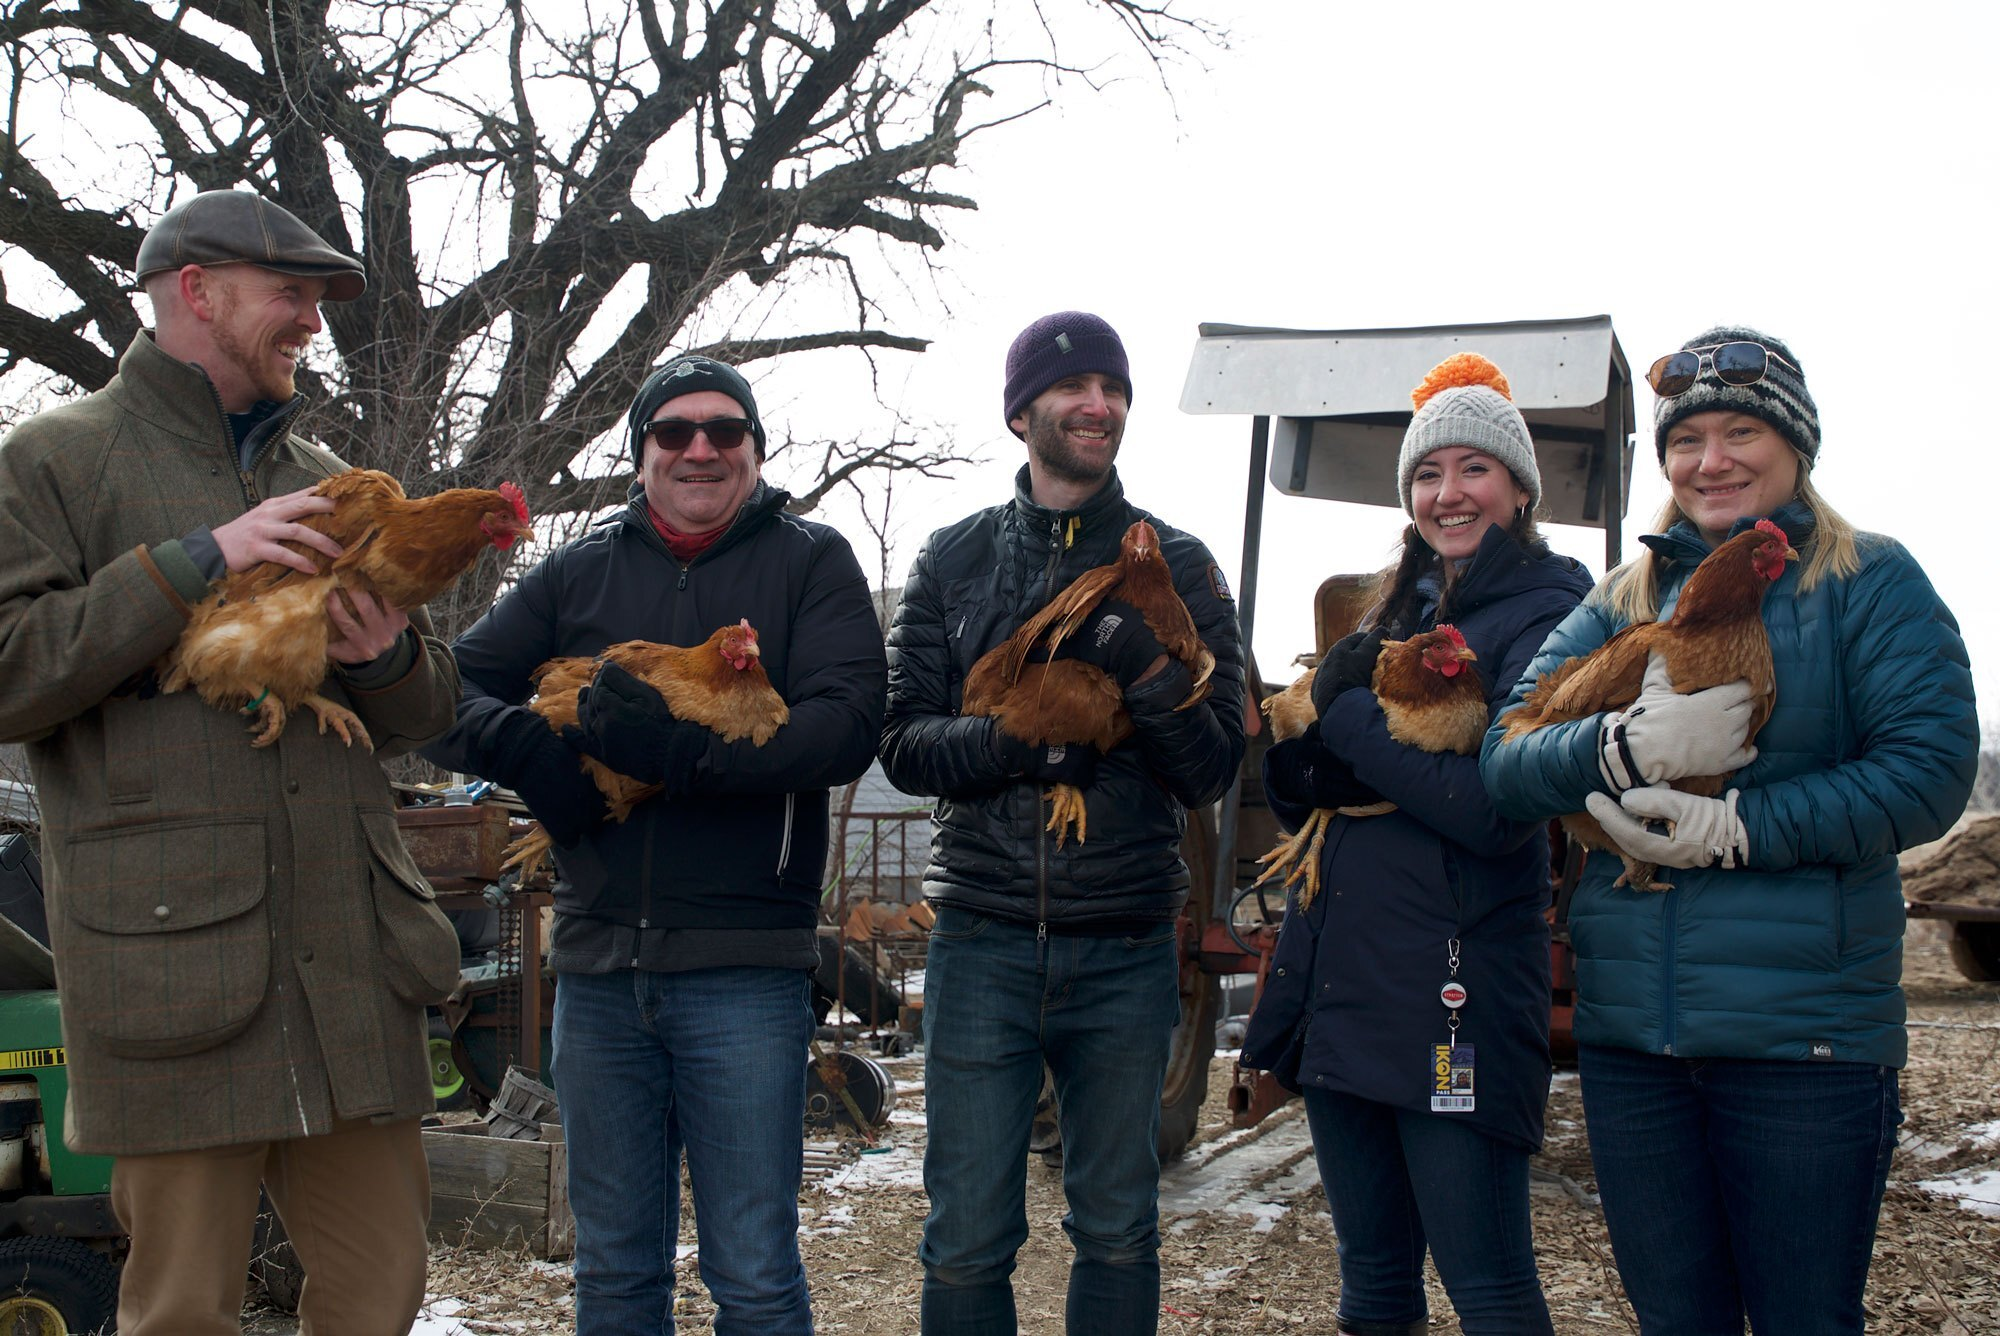 Bond Pets team with chickens